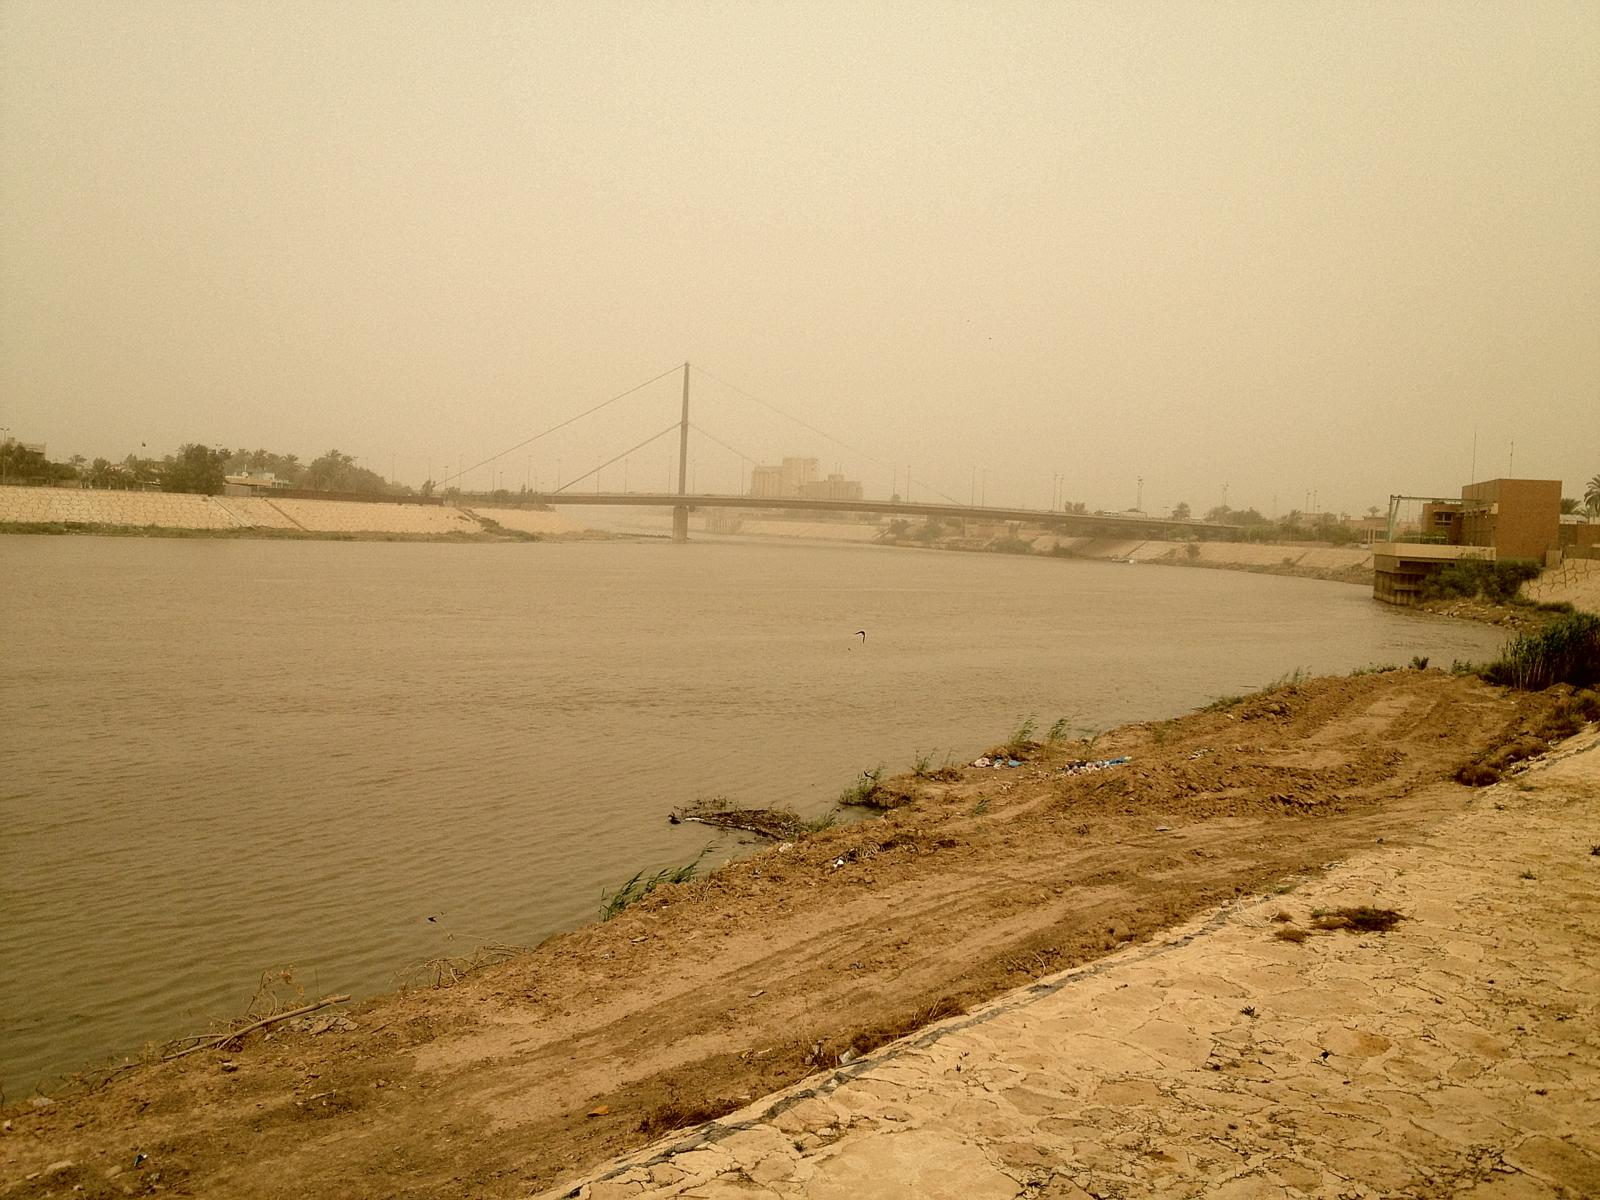 View of the river! Muddy muddy river...